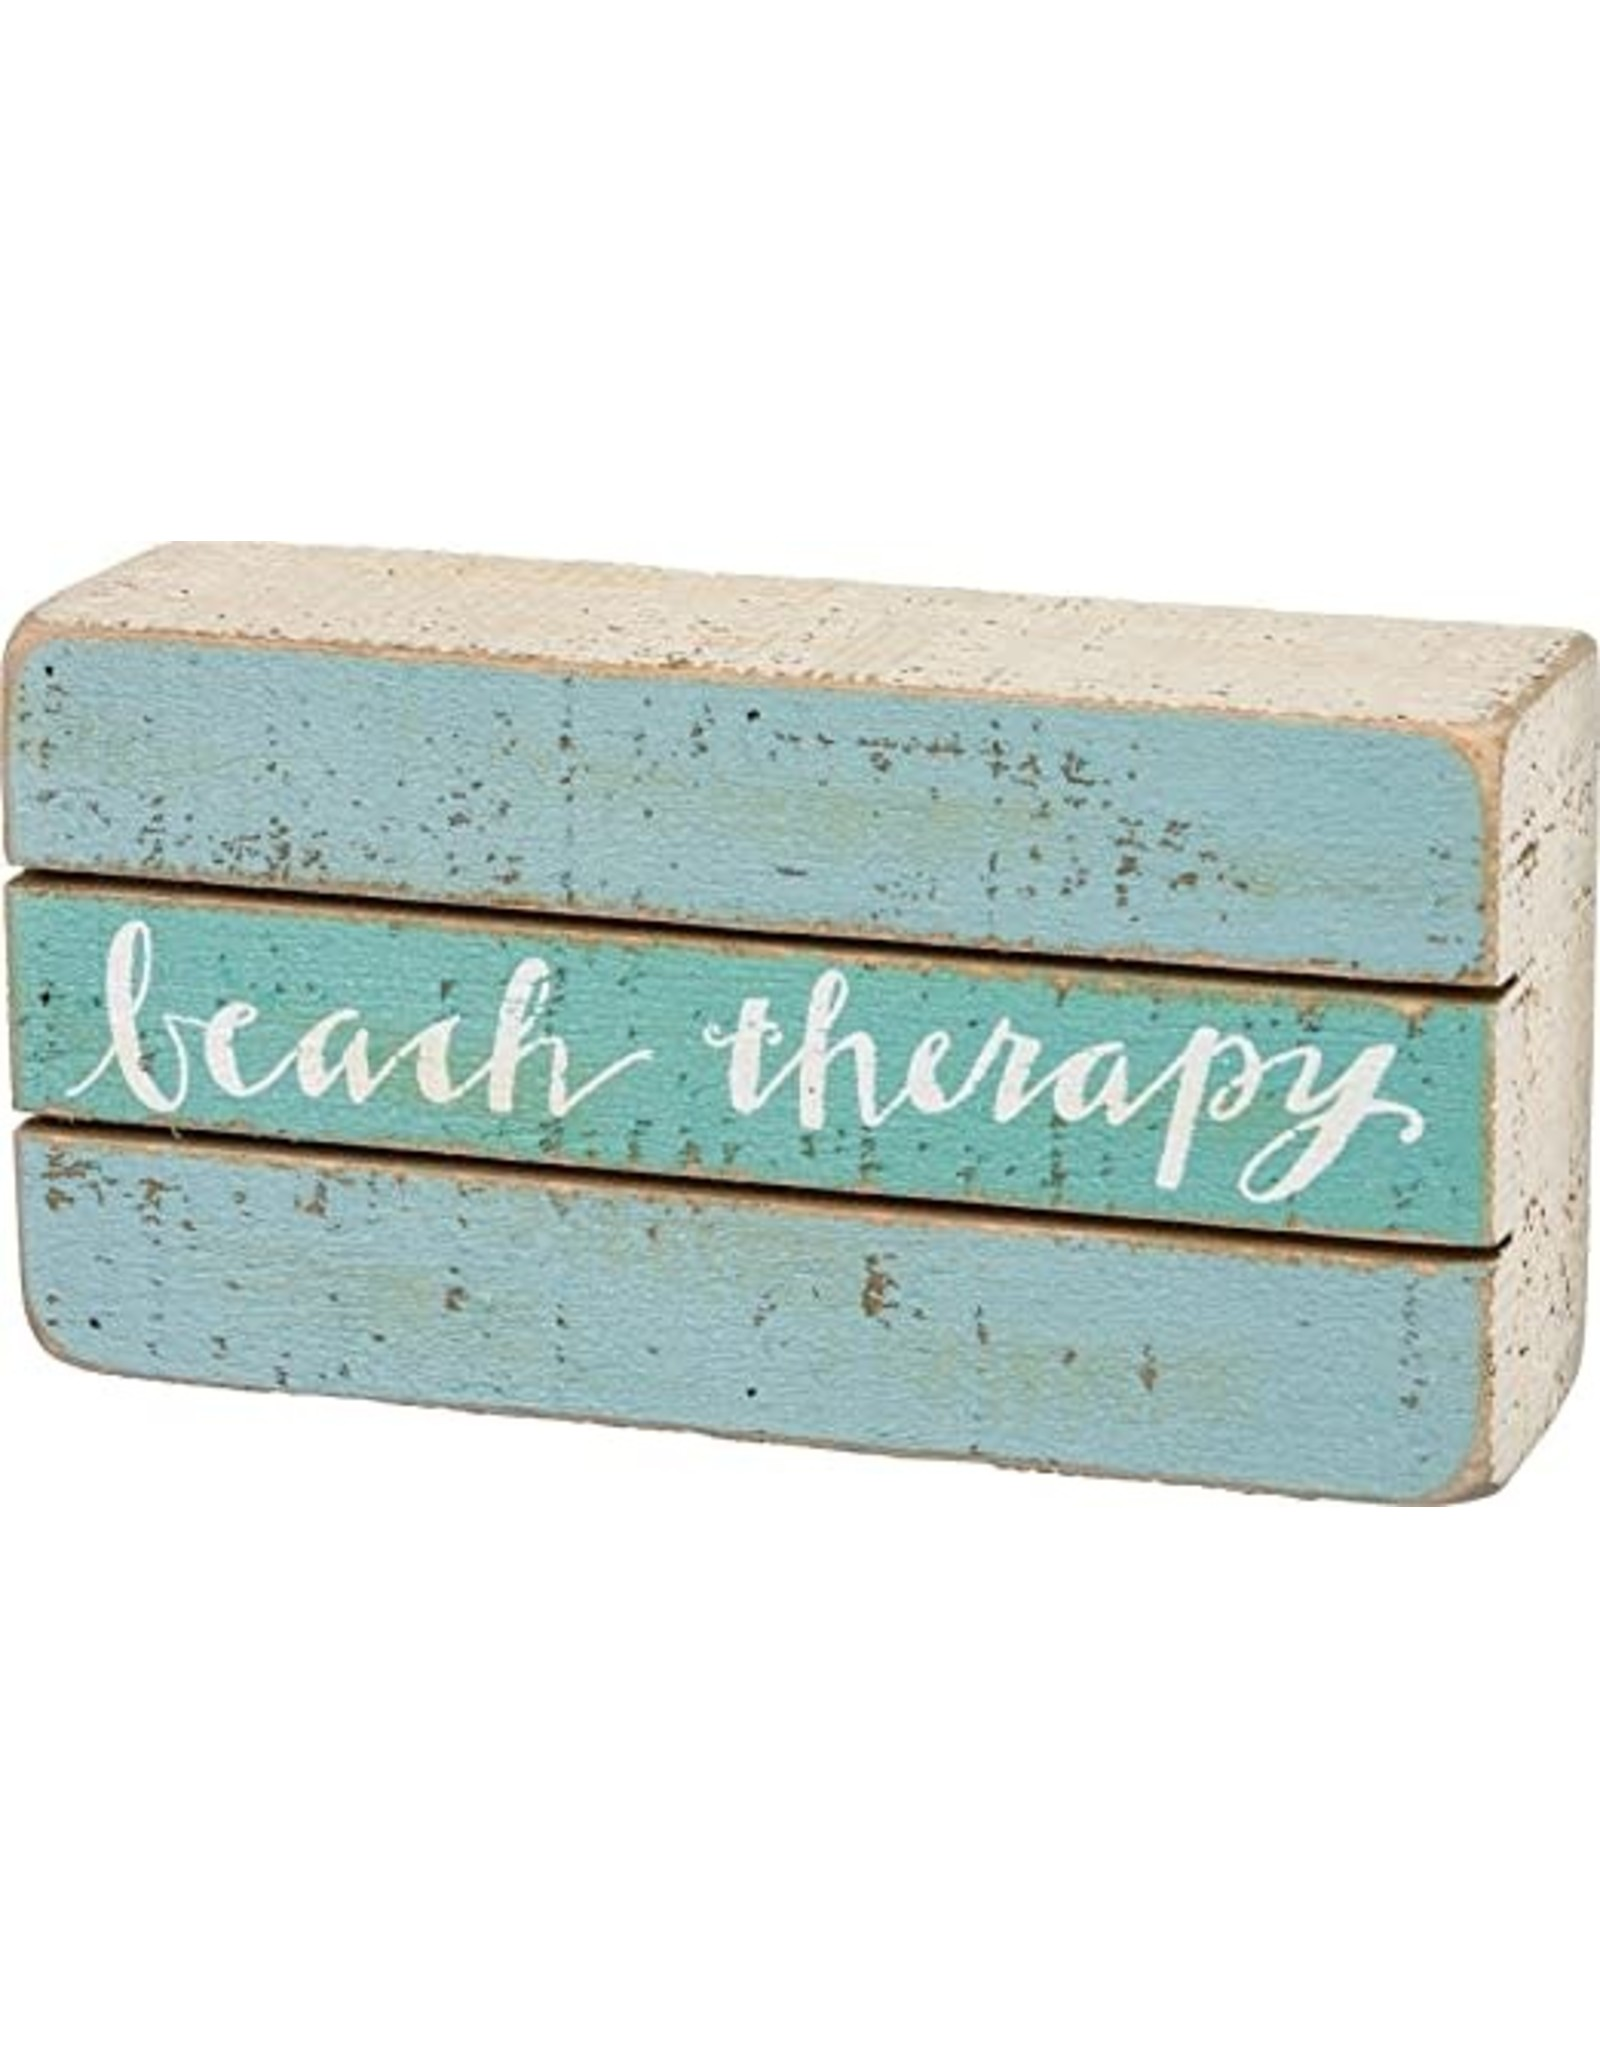 PRIMITIVES BY KATHY BEACH LOVER BLOCK SIGNS BEACH THERAPY